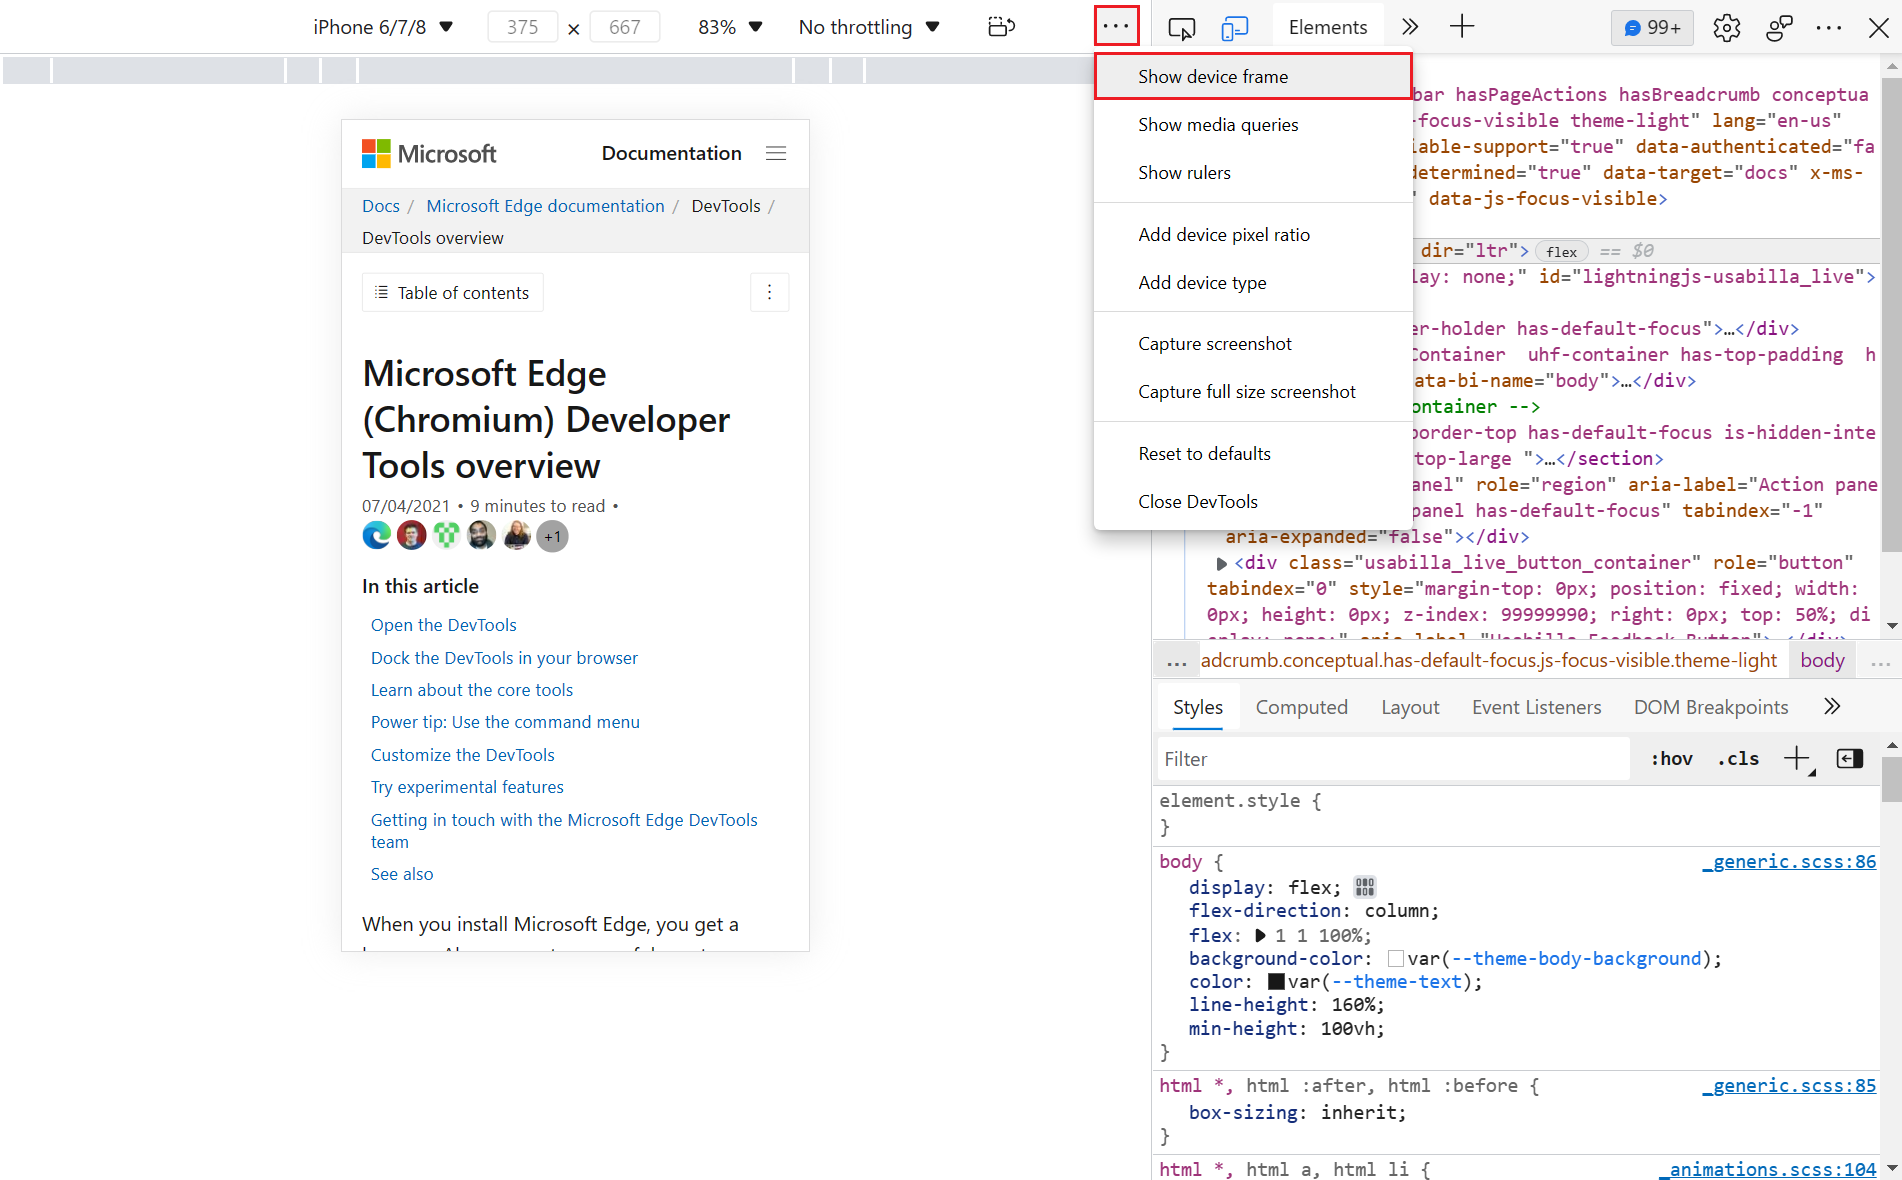 https://docs.microsoft.com/en-us/microsoft-edge/devtools-guide-chromium/media/device-mode-toggle-device-toolbar-option-show-device-frame.msft.png